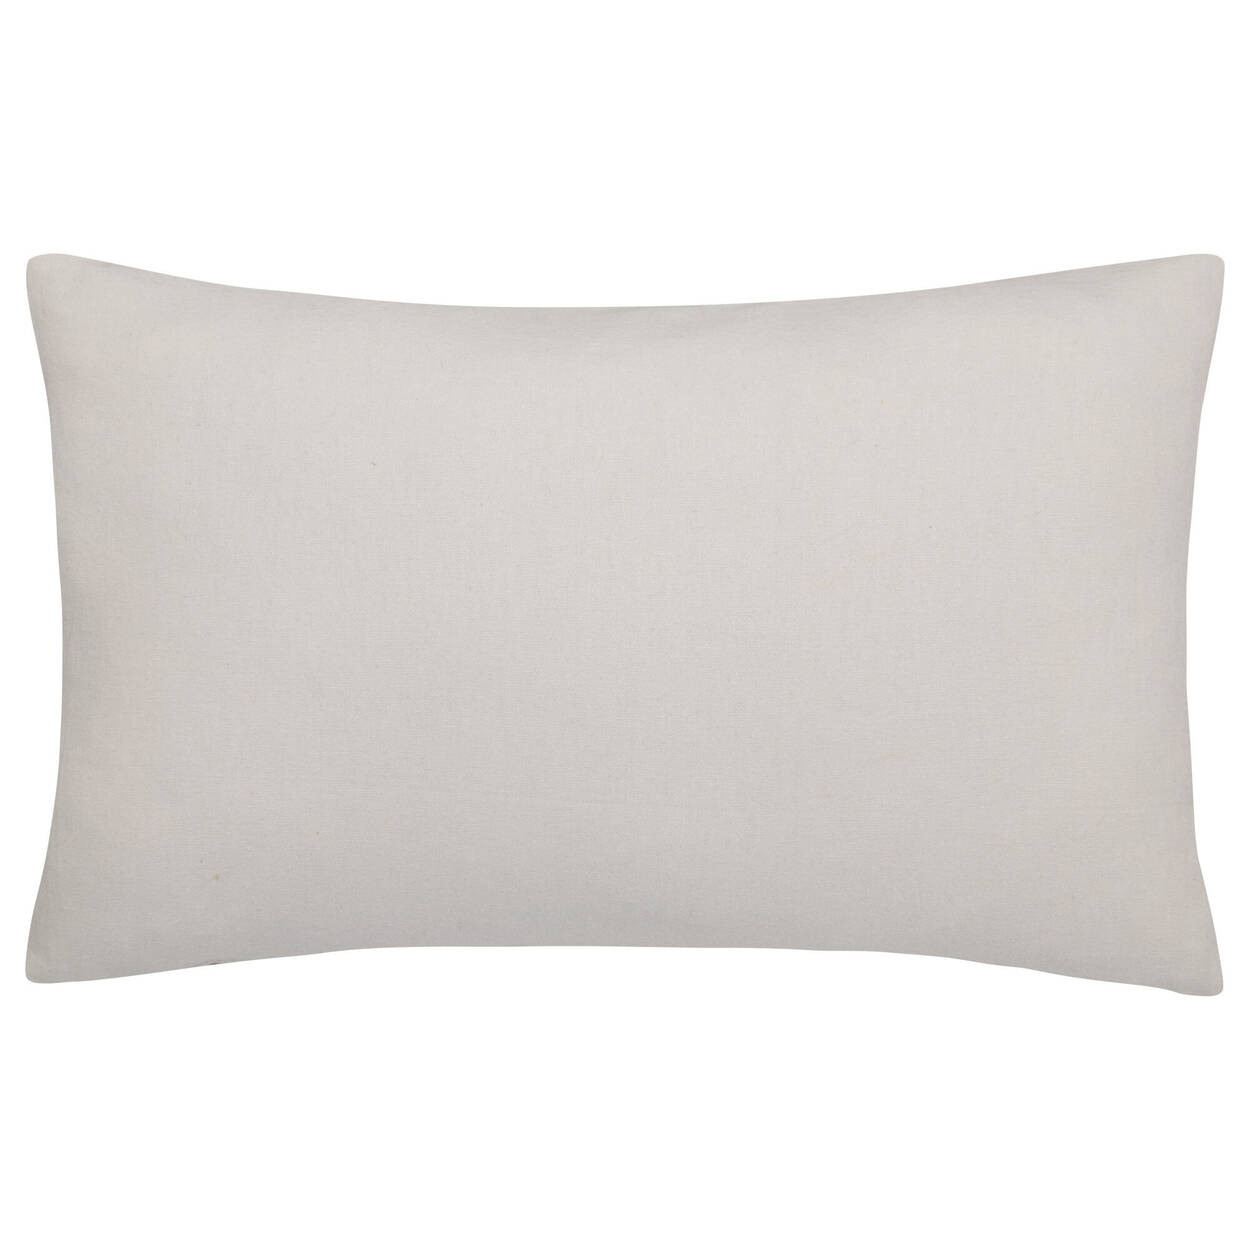 "Kinsley Embroidered Decorative Lumbar Pillow 14"" X 22"""